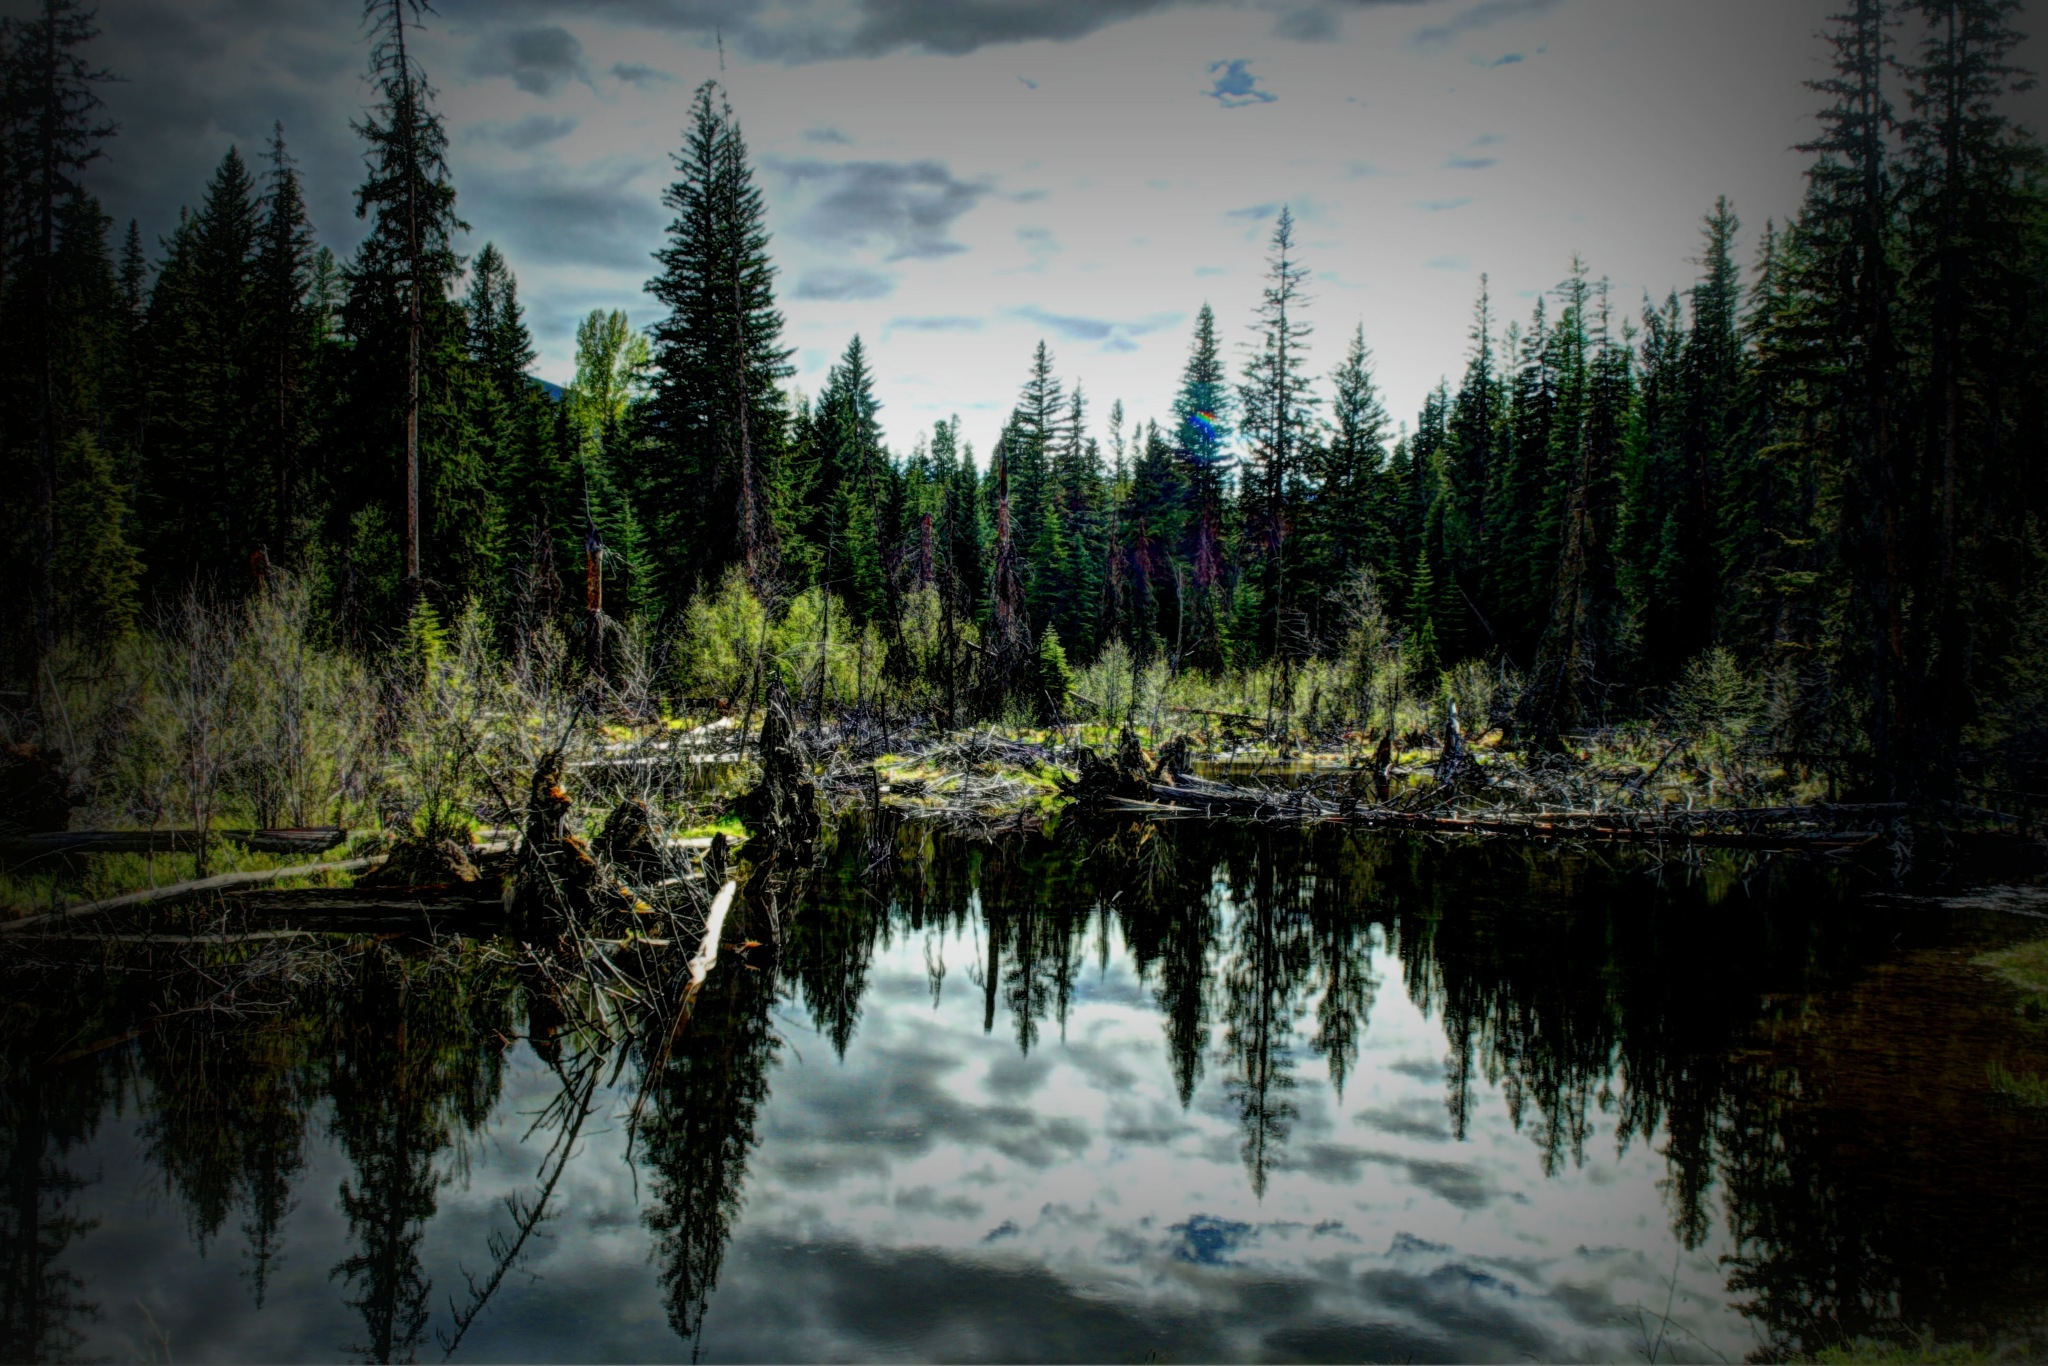 Late day pond HDR by GerryFrederick